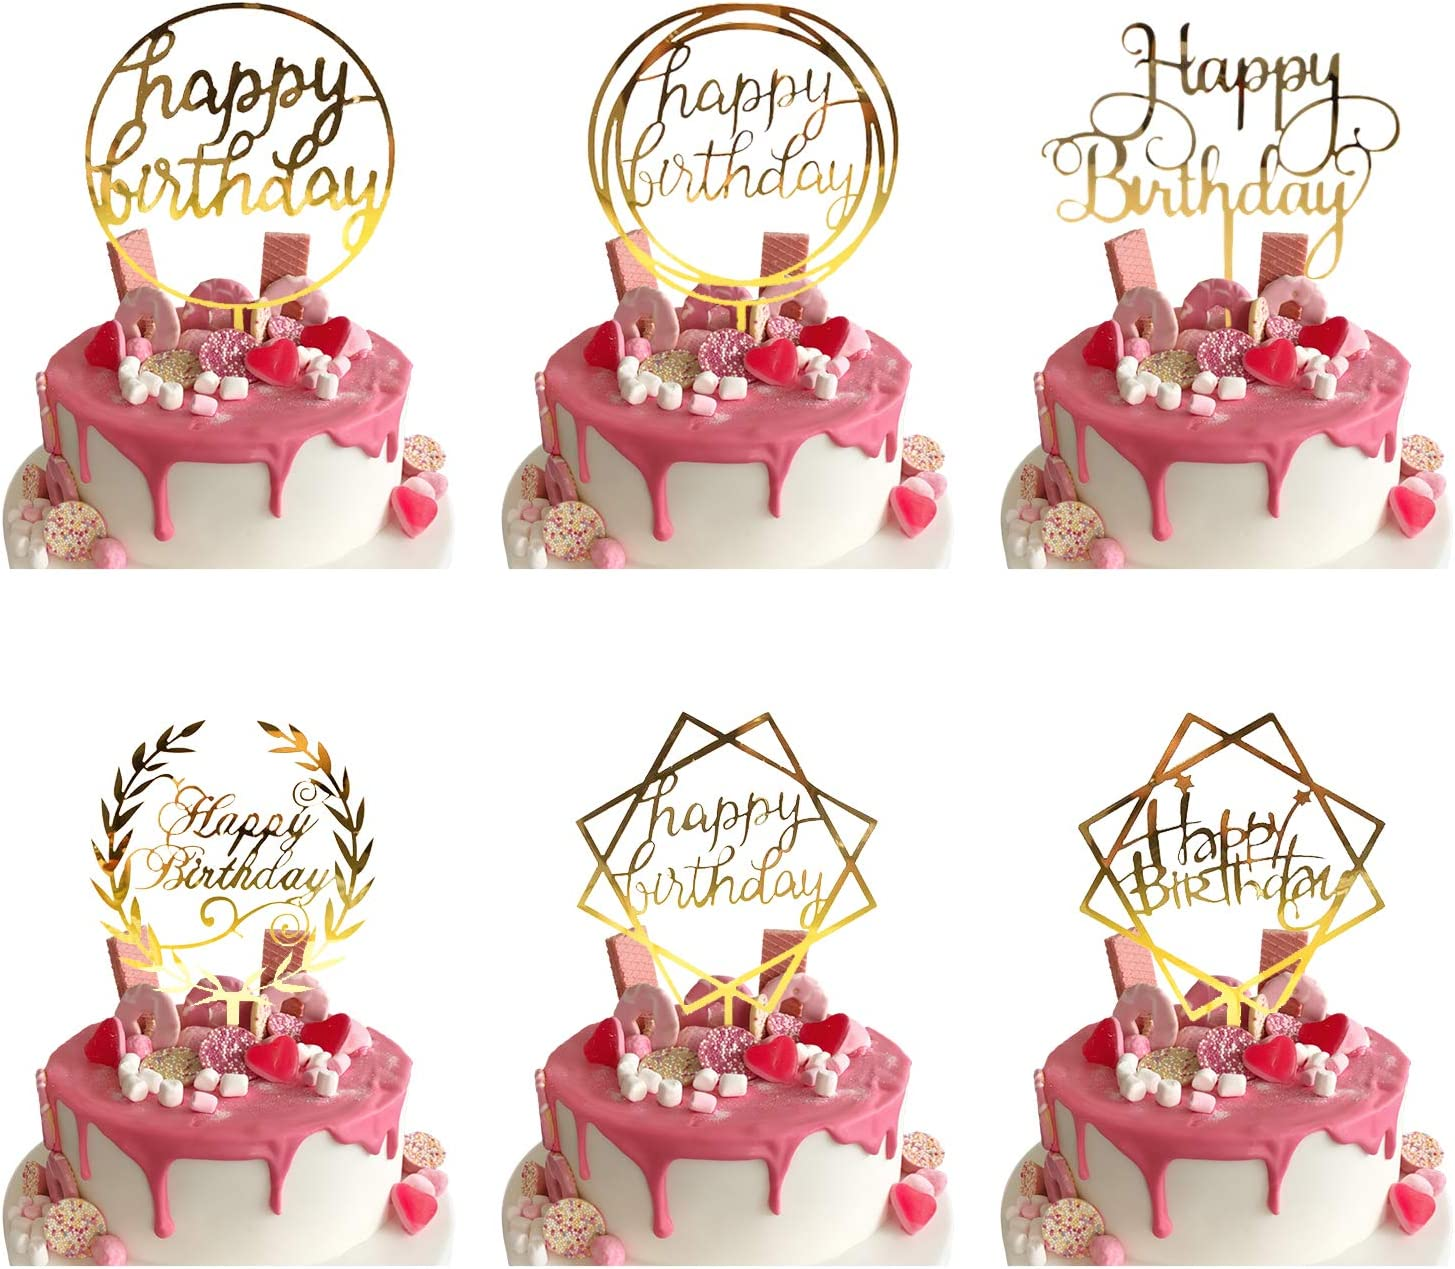 Outstanding 6 Pcs Happy Birthday Cake Toppers Gold Cake Topper For Kids Adult Funny Birthday Cards Online Fluifree Goldxyz